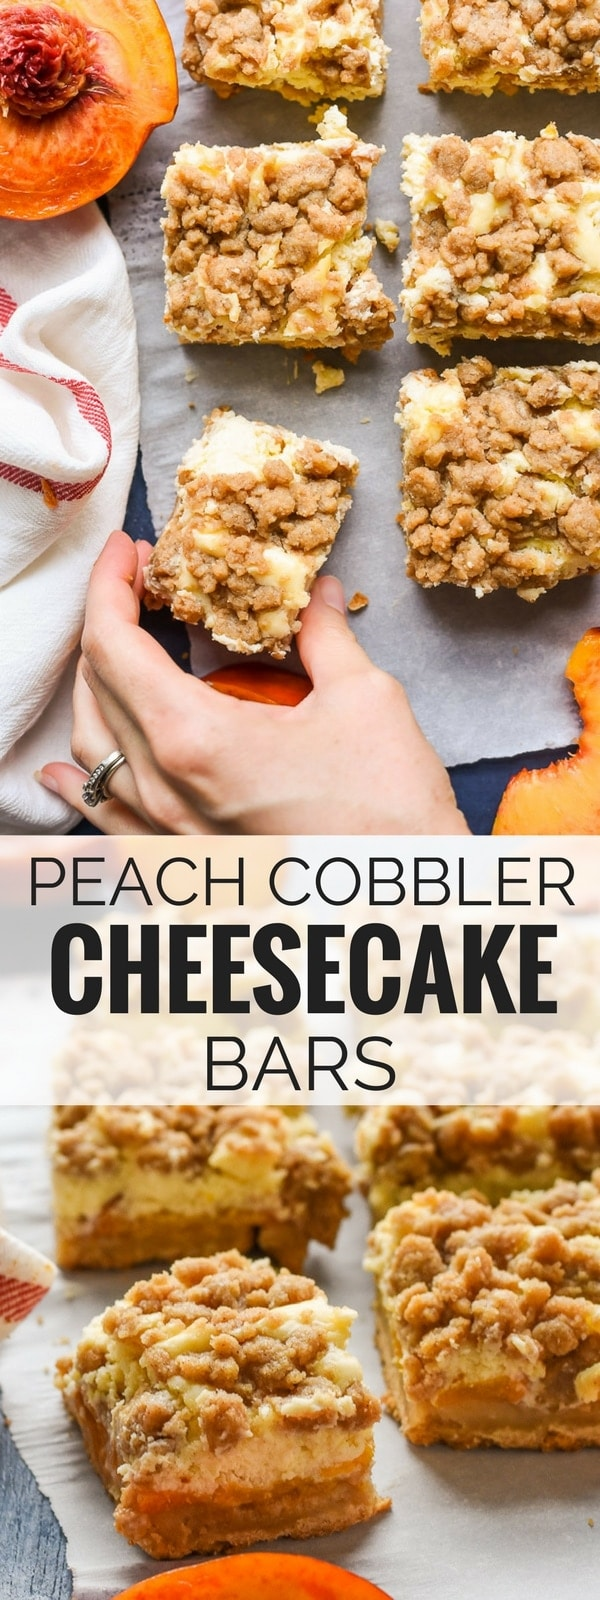 Peach Cobbler Cheesecake Bars combine two amazing desserts to make one delicious crunchy, creamy bar.